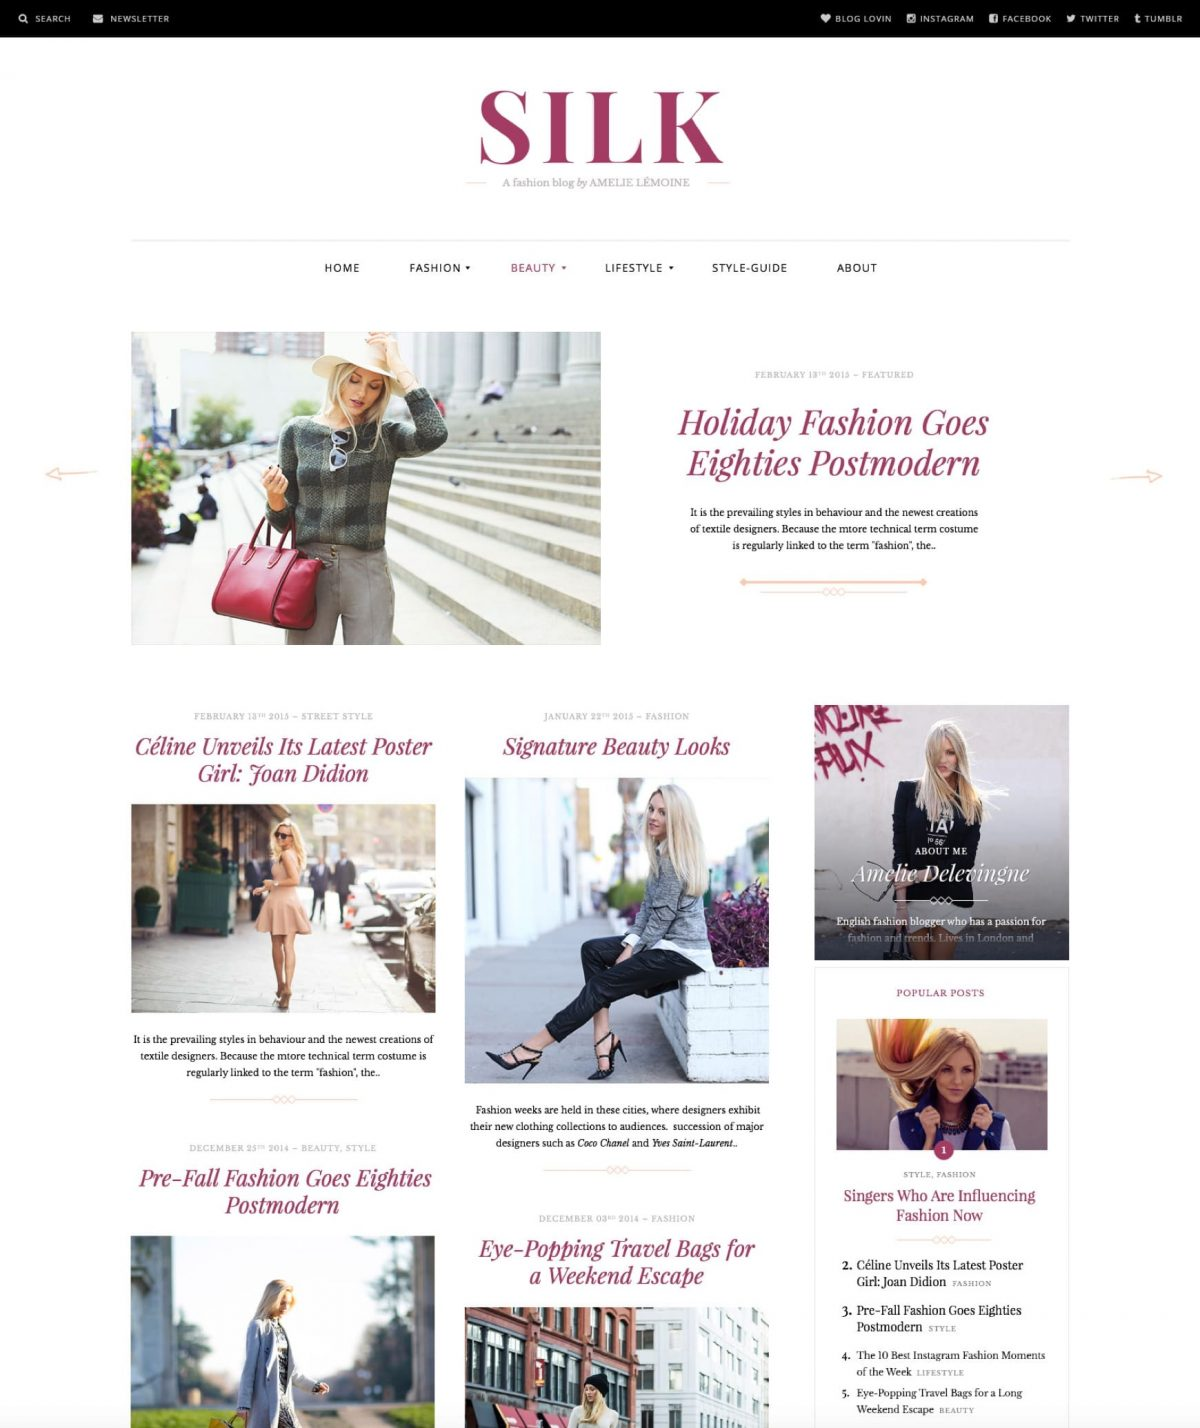 Silk fashion blog WordPress theme Desktop View